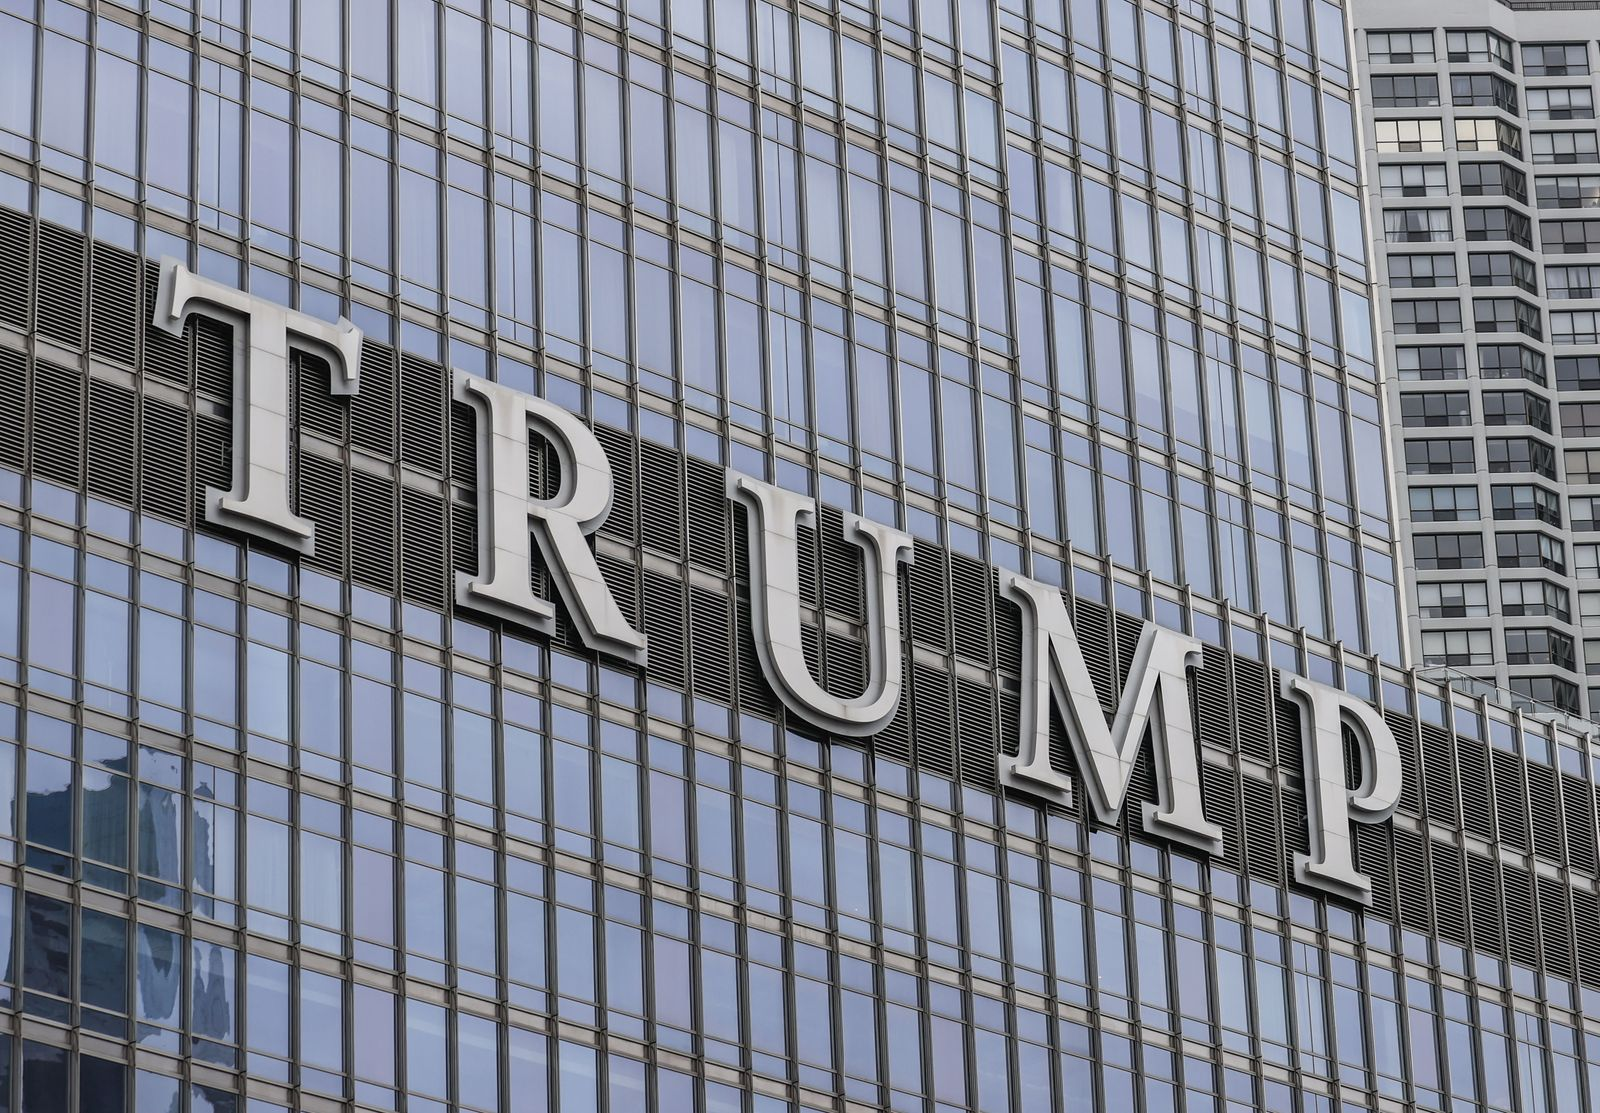 Chicago Alderman wants TRUMP sign removed in Chicago, USA - 13 Jan 2021